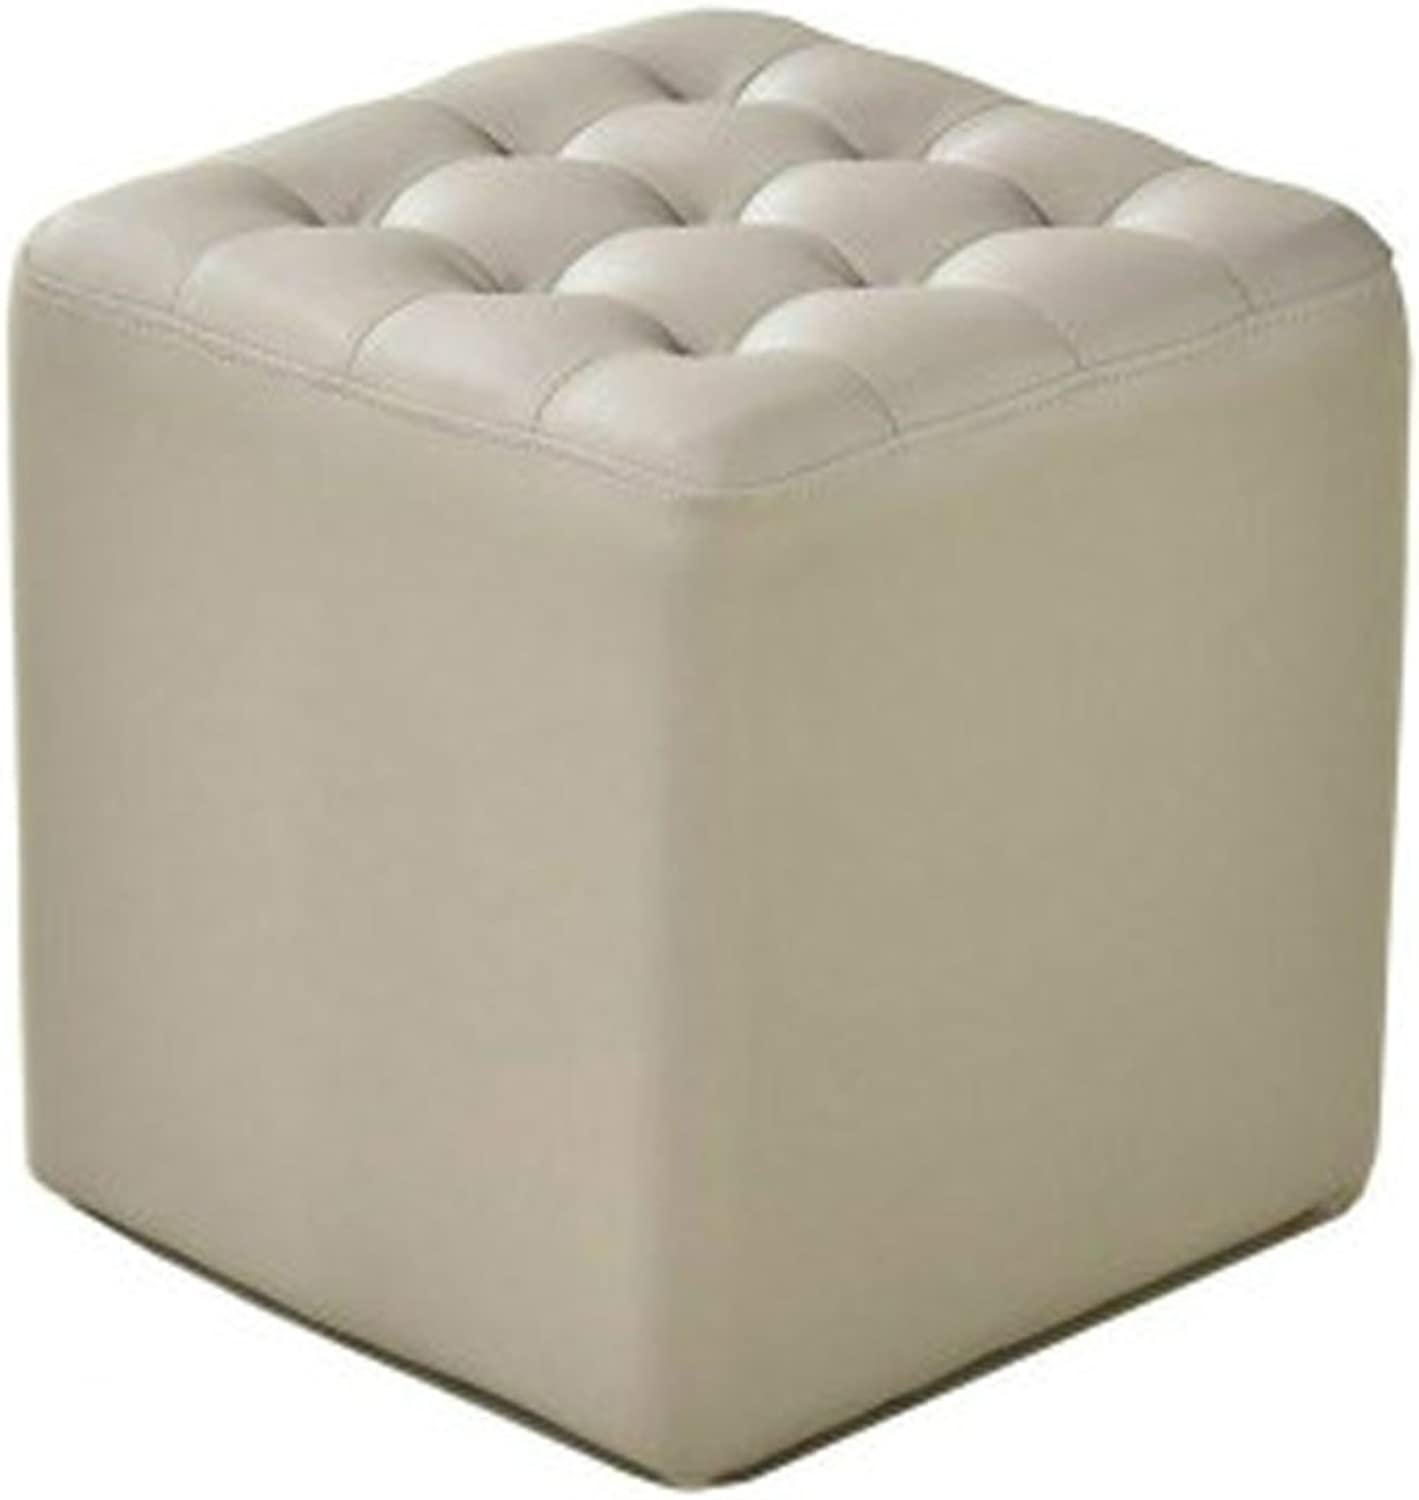 Leather Stool Sofa Stool Leather Stool Square Stool shoes Bench Coffee Table Stool Living Room Small Stool Makeup Stool(White) 0522A (color   Square)